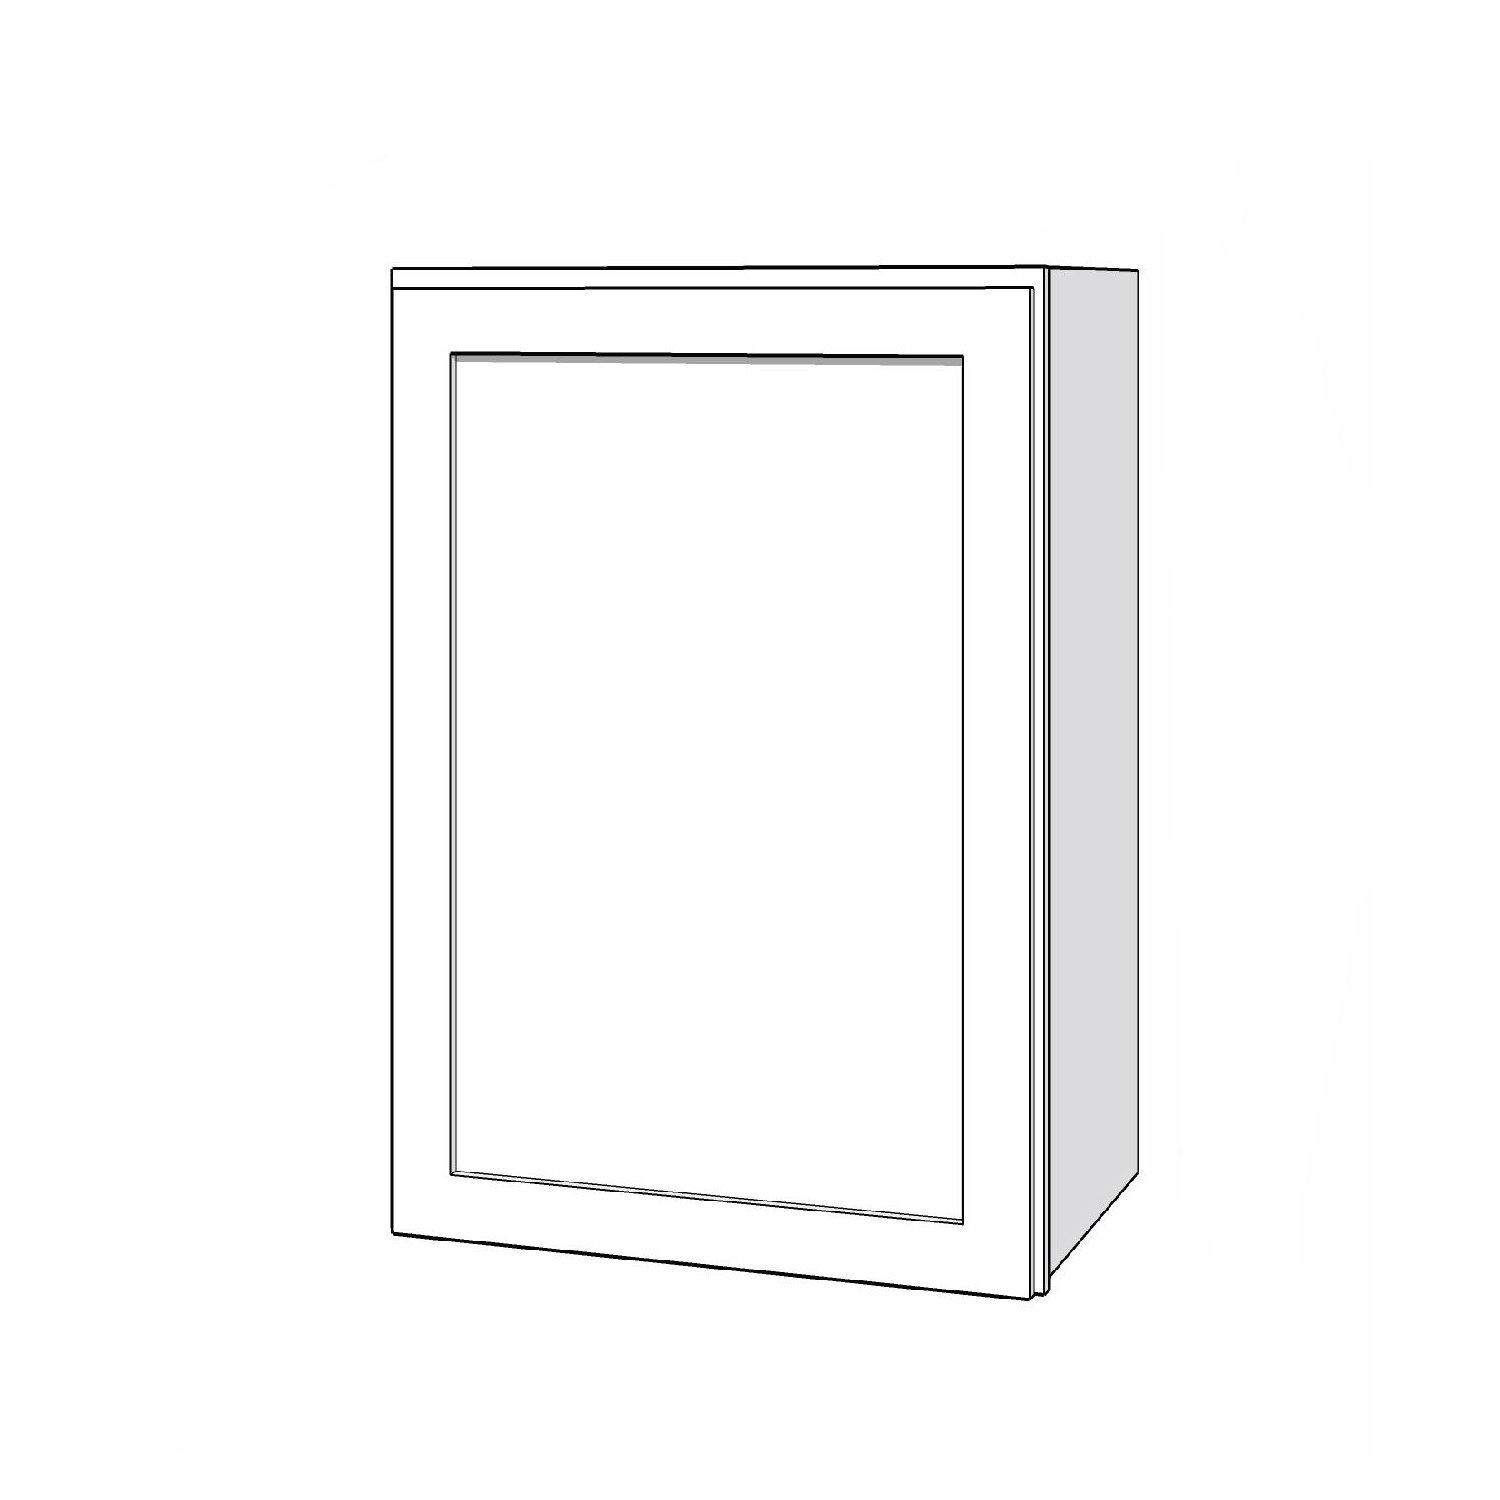 Wall Cabinet - 21in. x 30in. - White